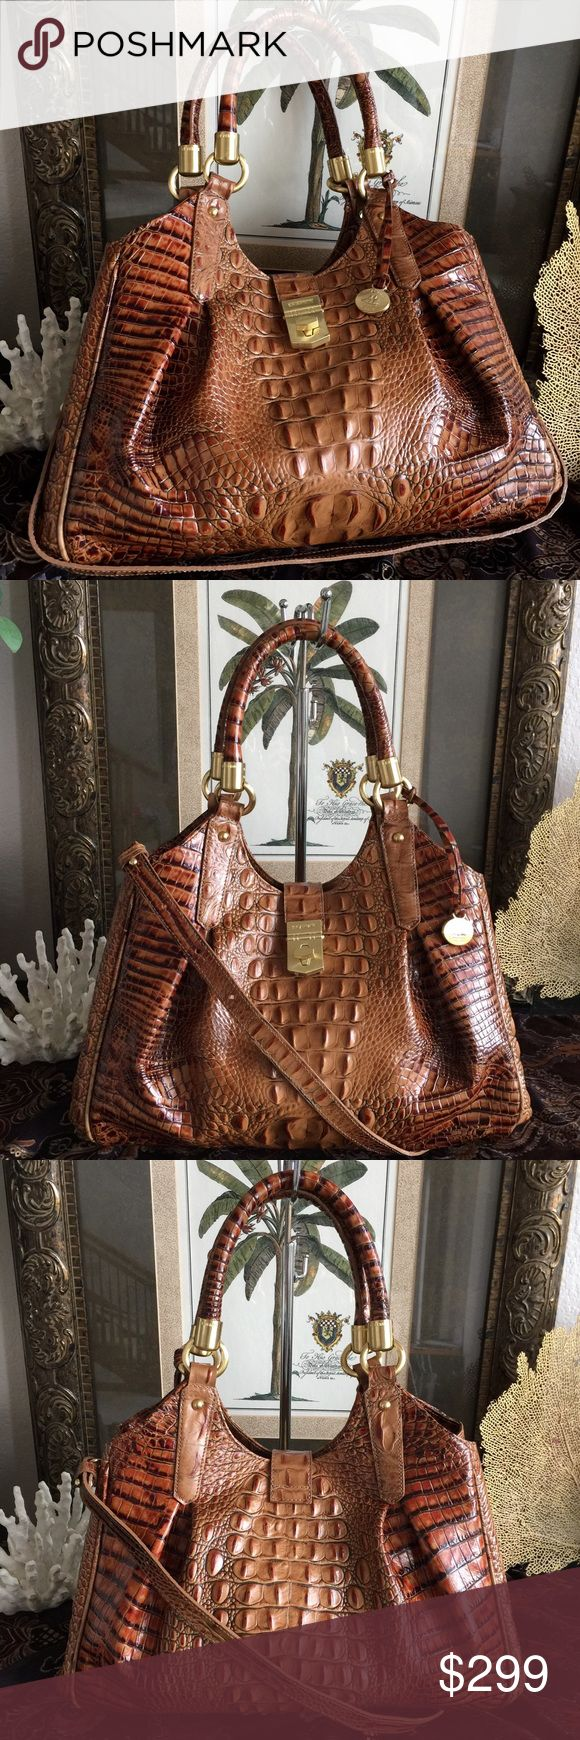 "🌴NEVER USED 🌴BRAHMIN TOASTED ALMOND ELISA HOBO🌴 Brahmin TOASTED ALMOND ELISA Never used. Still has plastic protective film on latch hardware.  Comes w/Brahmin Dust Bag Croc Embossed leather wgold tone hardware to finish the classic Brahmin look! Beautiful bag featuring front and back pleats.  Suede-like lining w/center zip divider  Additional zipper compartment,2 organizing slip pockets  Fold over tab turn lock closure  Footed bottom  Handles 9"" drop-will fit over shoulder  Strap 17""drop…"